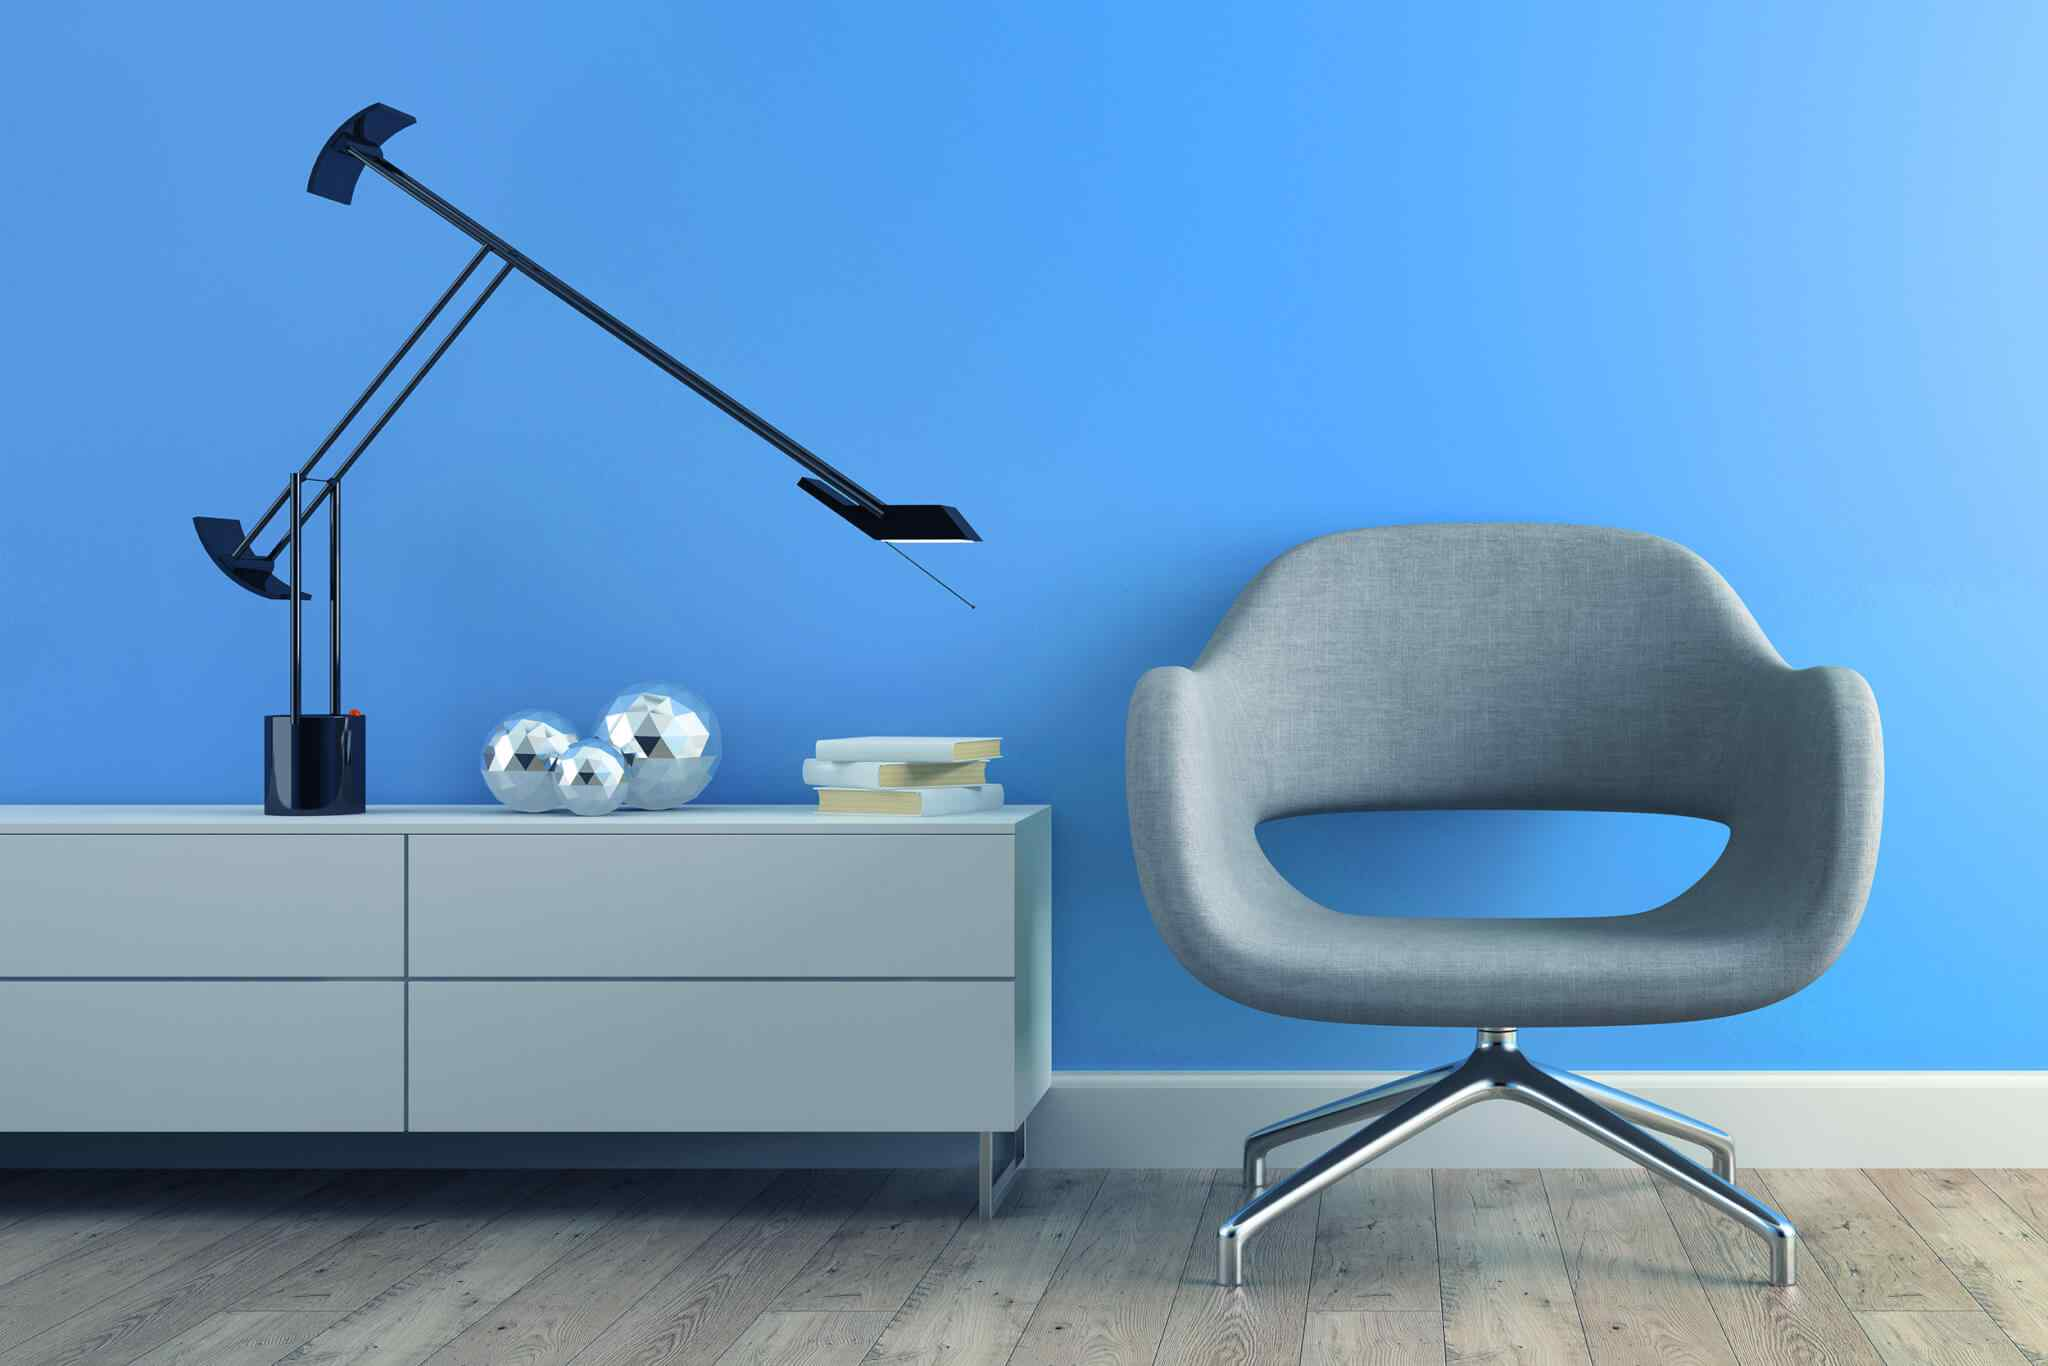 https://kitchenlegacy.com/wp-content/uploads/2017/05/image-chair-blue-wall.jpg